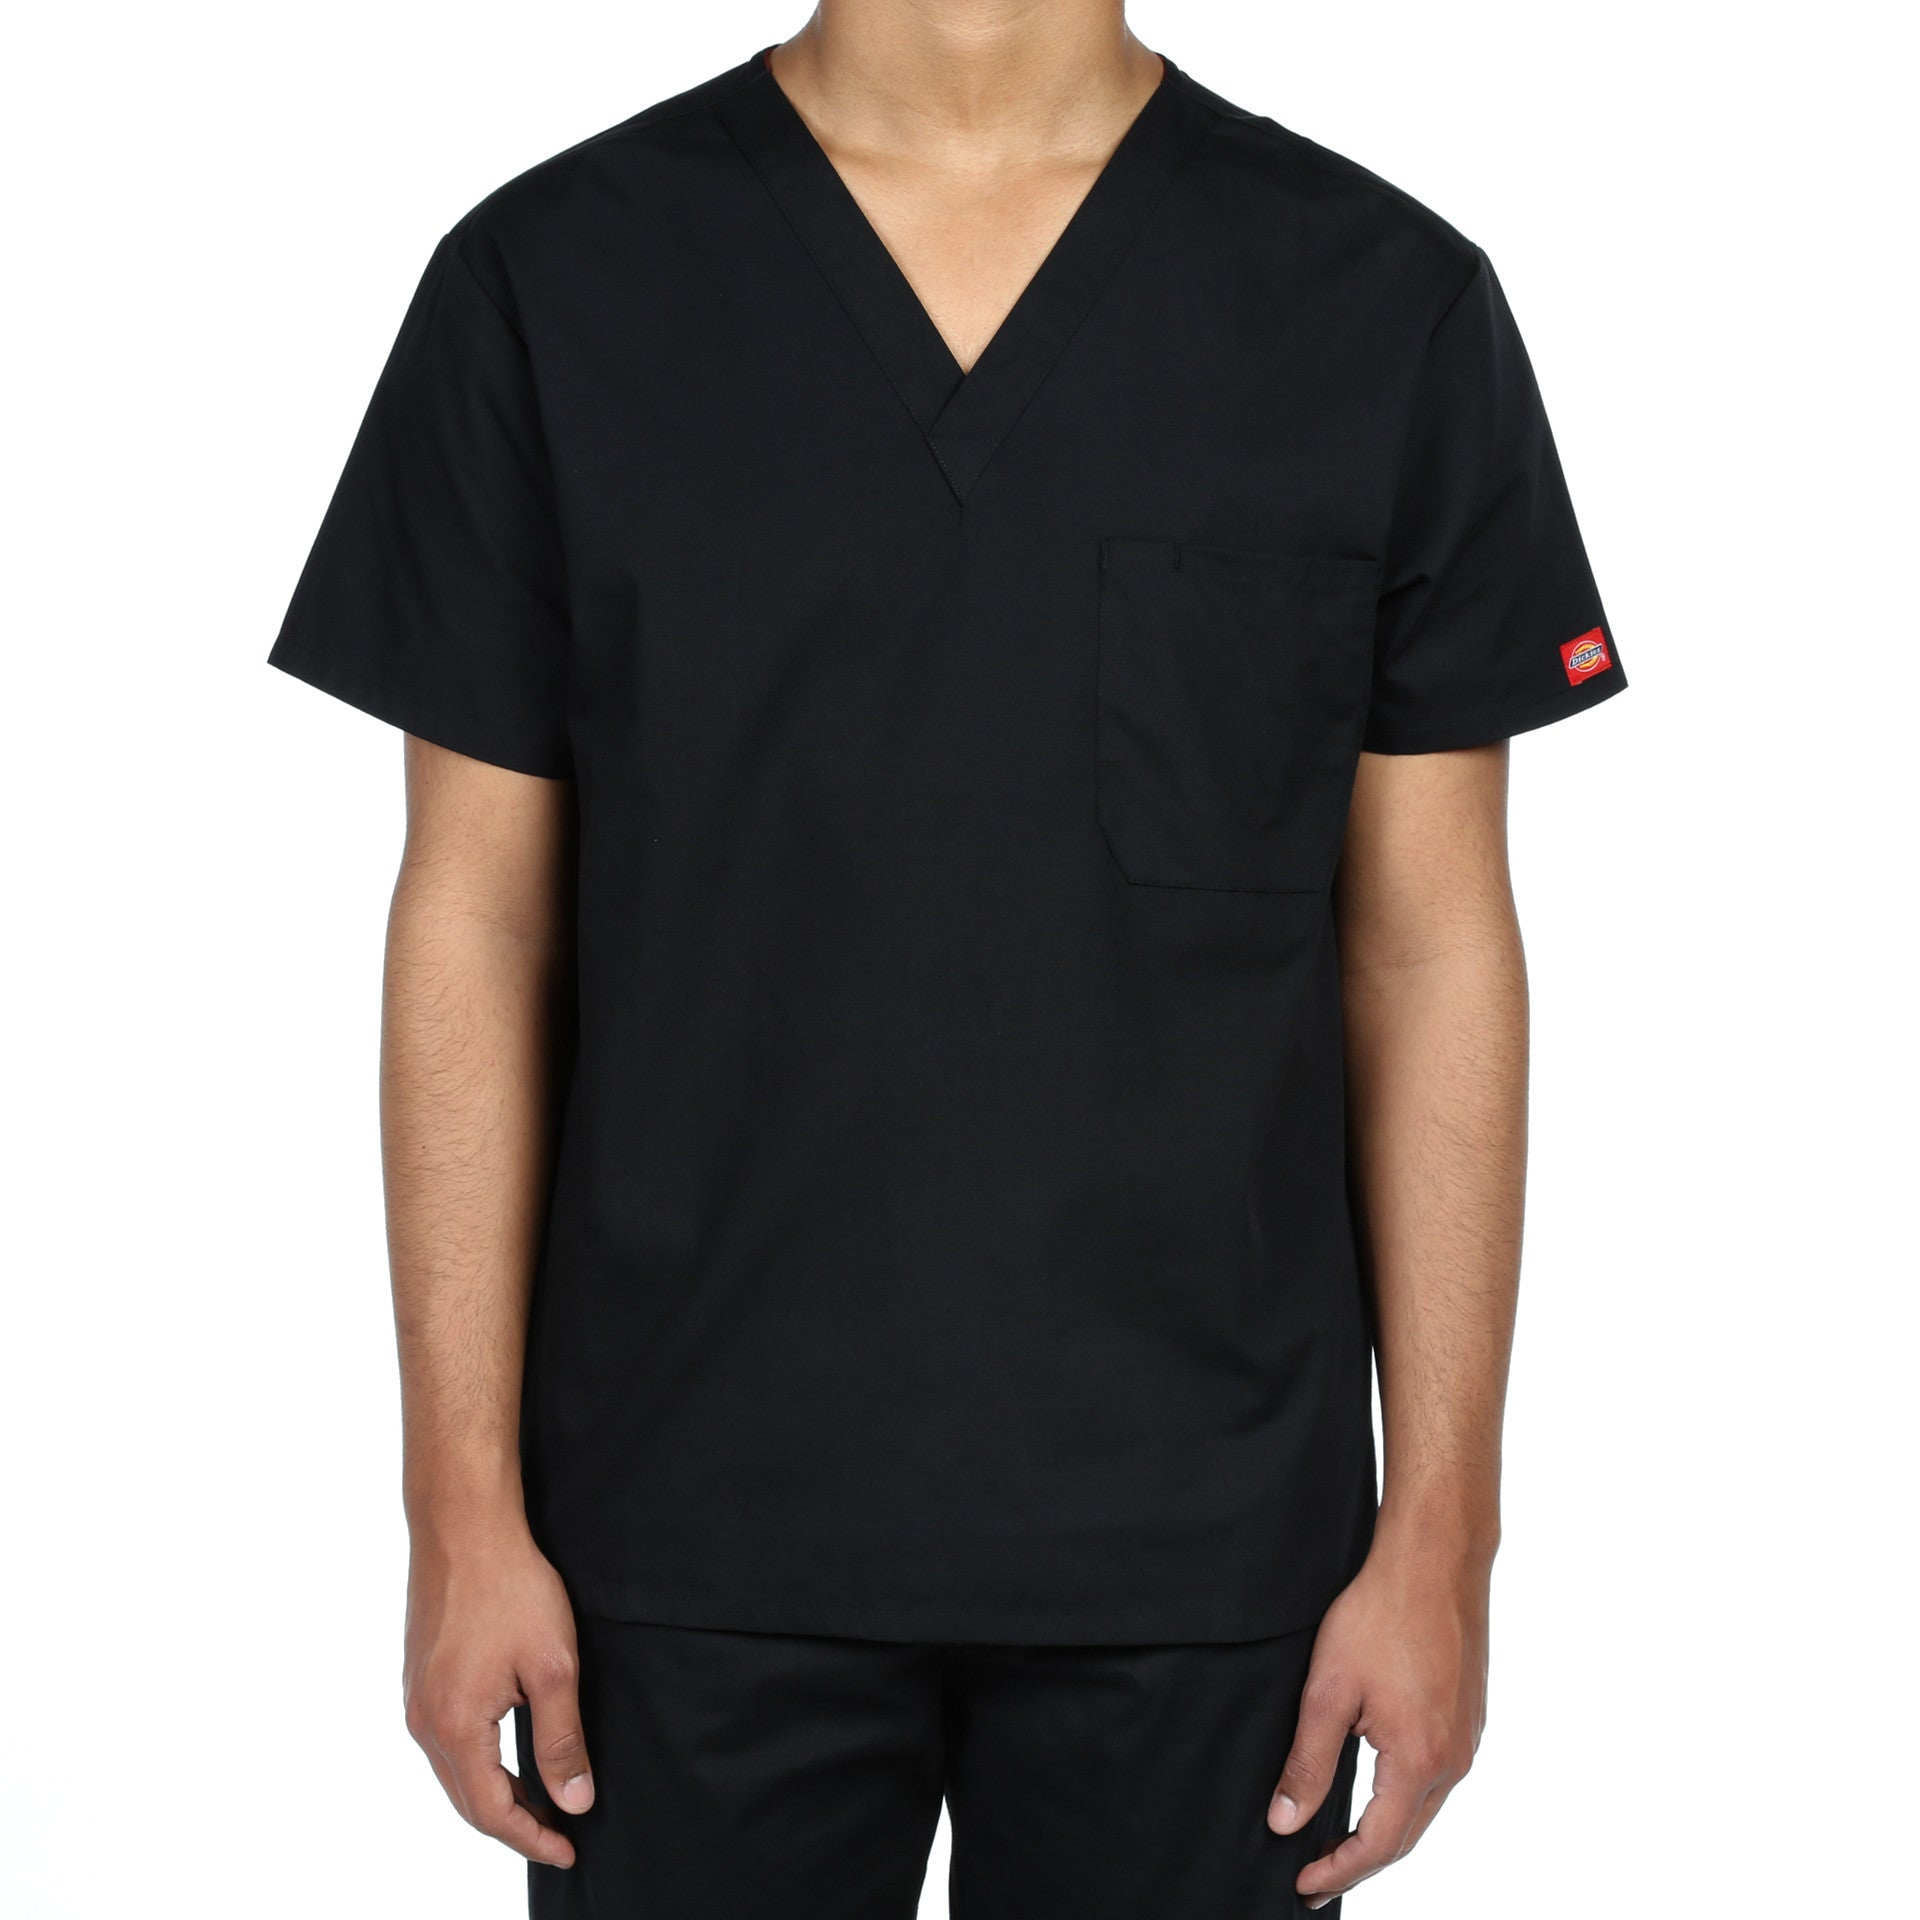 791a50e5dd5 Dickies Unisex V-Neck One Pocket Scrub Top - Black - New Star